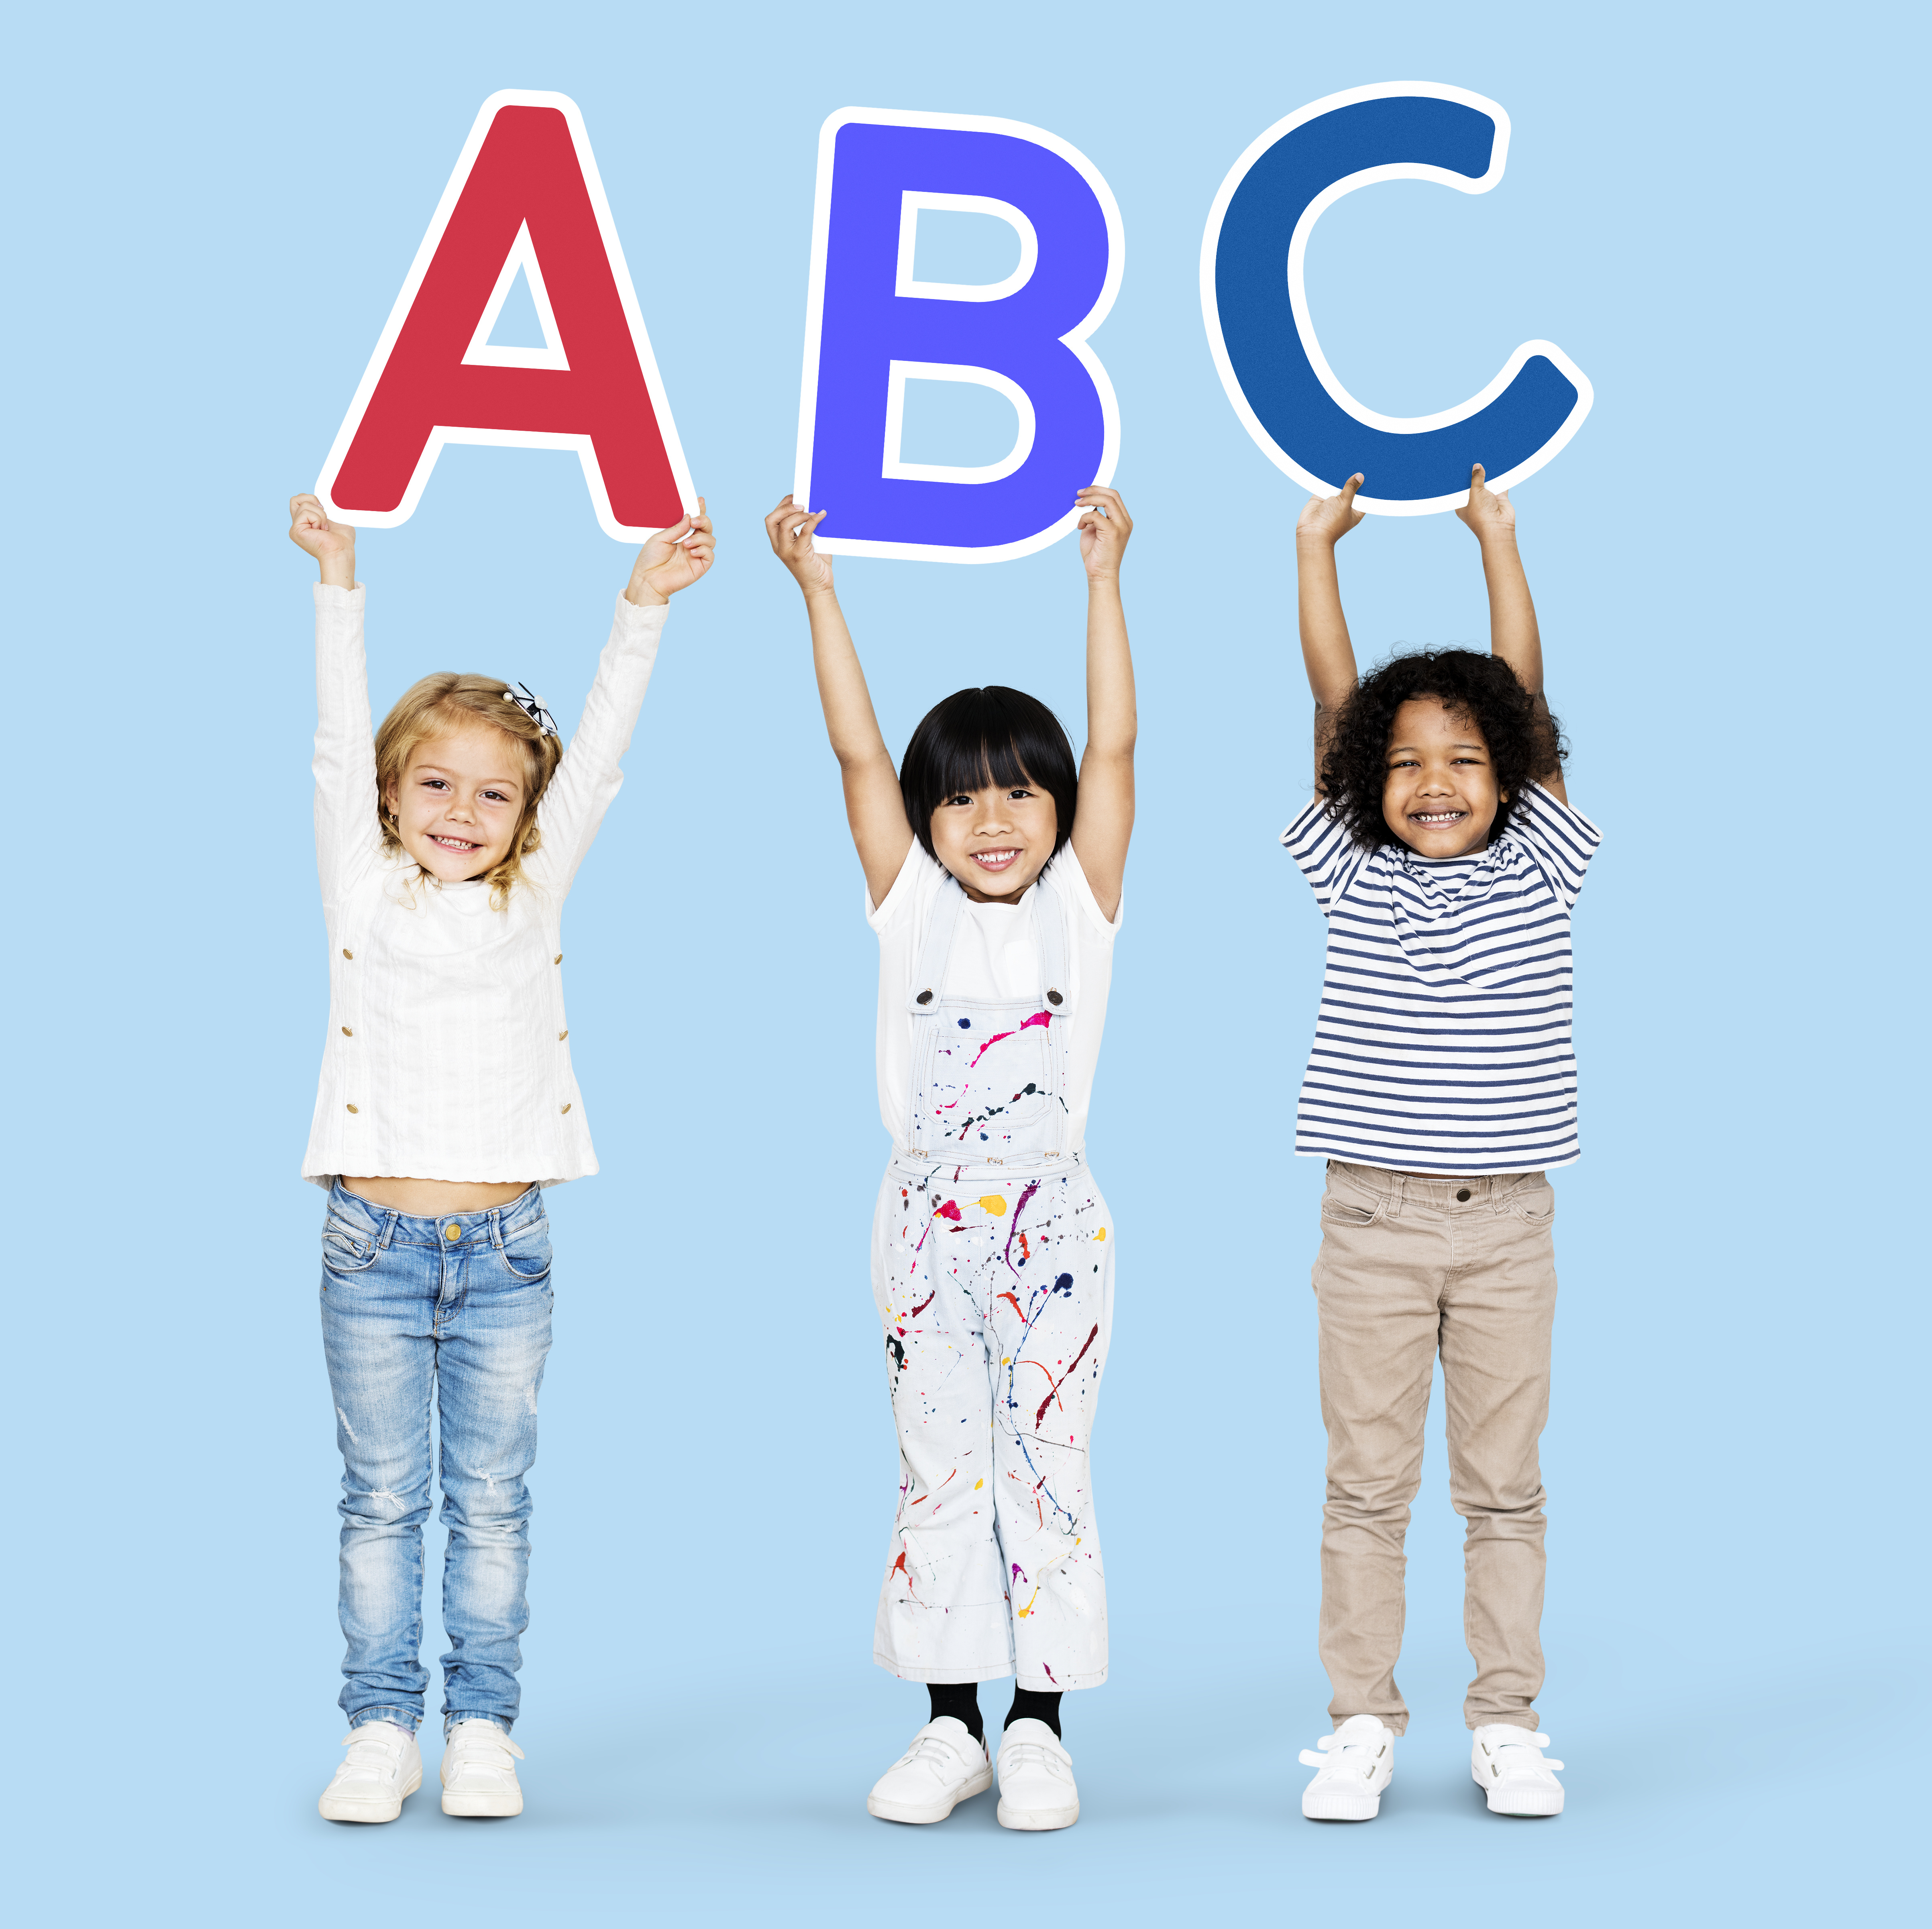 Diverse happy kids learning the ABC